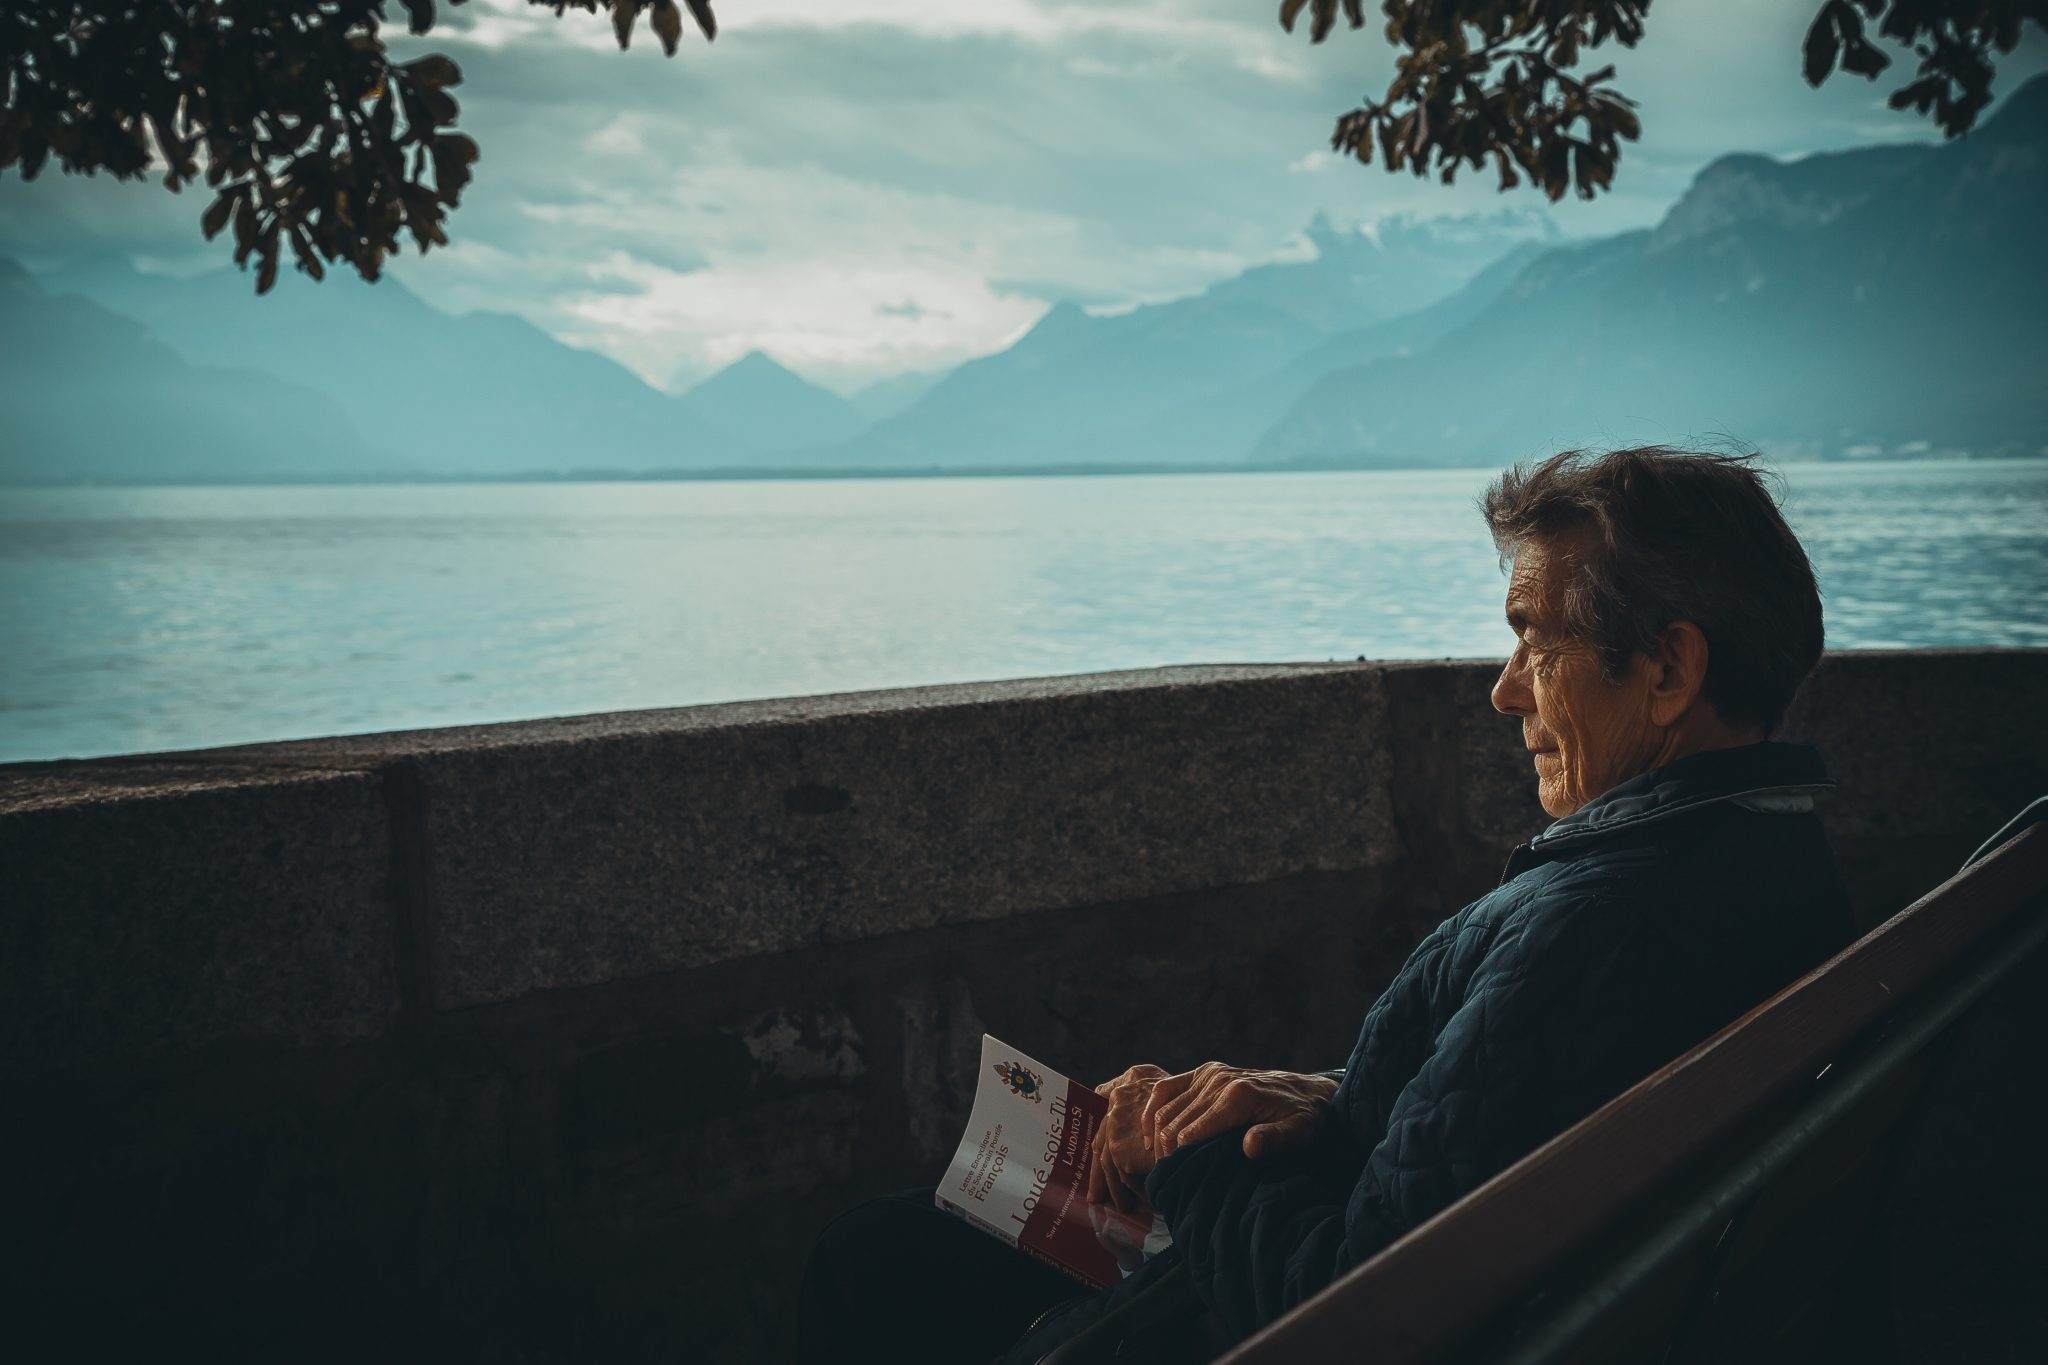 Many seniors think they see better than they do